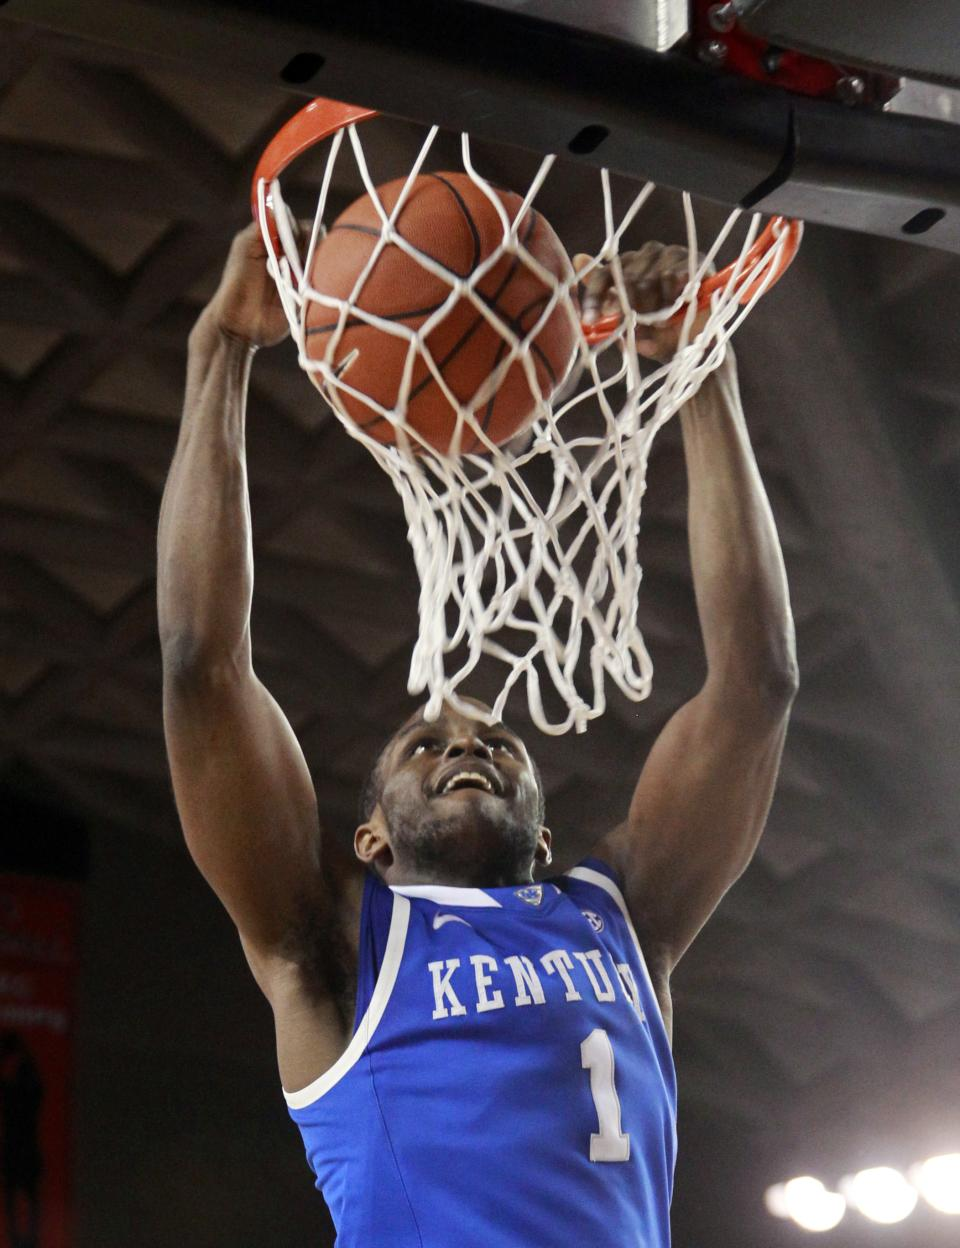 Kentucky guard Darius Miller scores in the second half of Kentucky's 57-44 win over Georgia in an NCAA college basketball game Tuesday, Jan. 24, 2012, in Athens, Ga.   (AP Photo/John Bazemore)